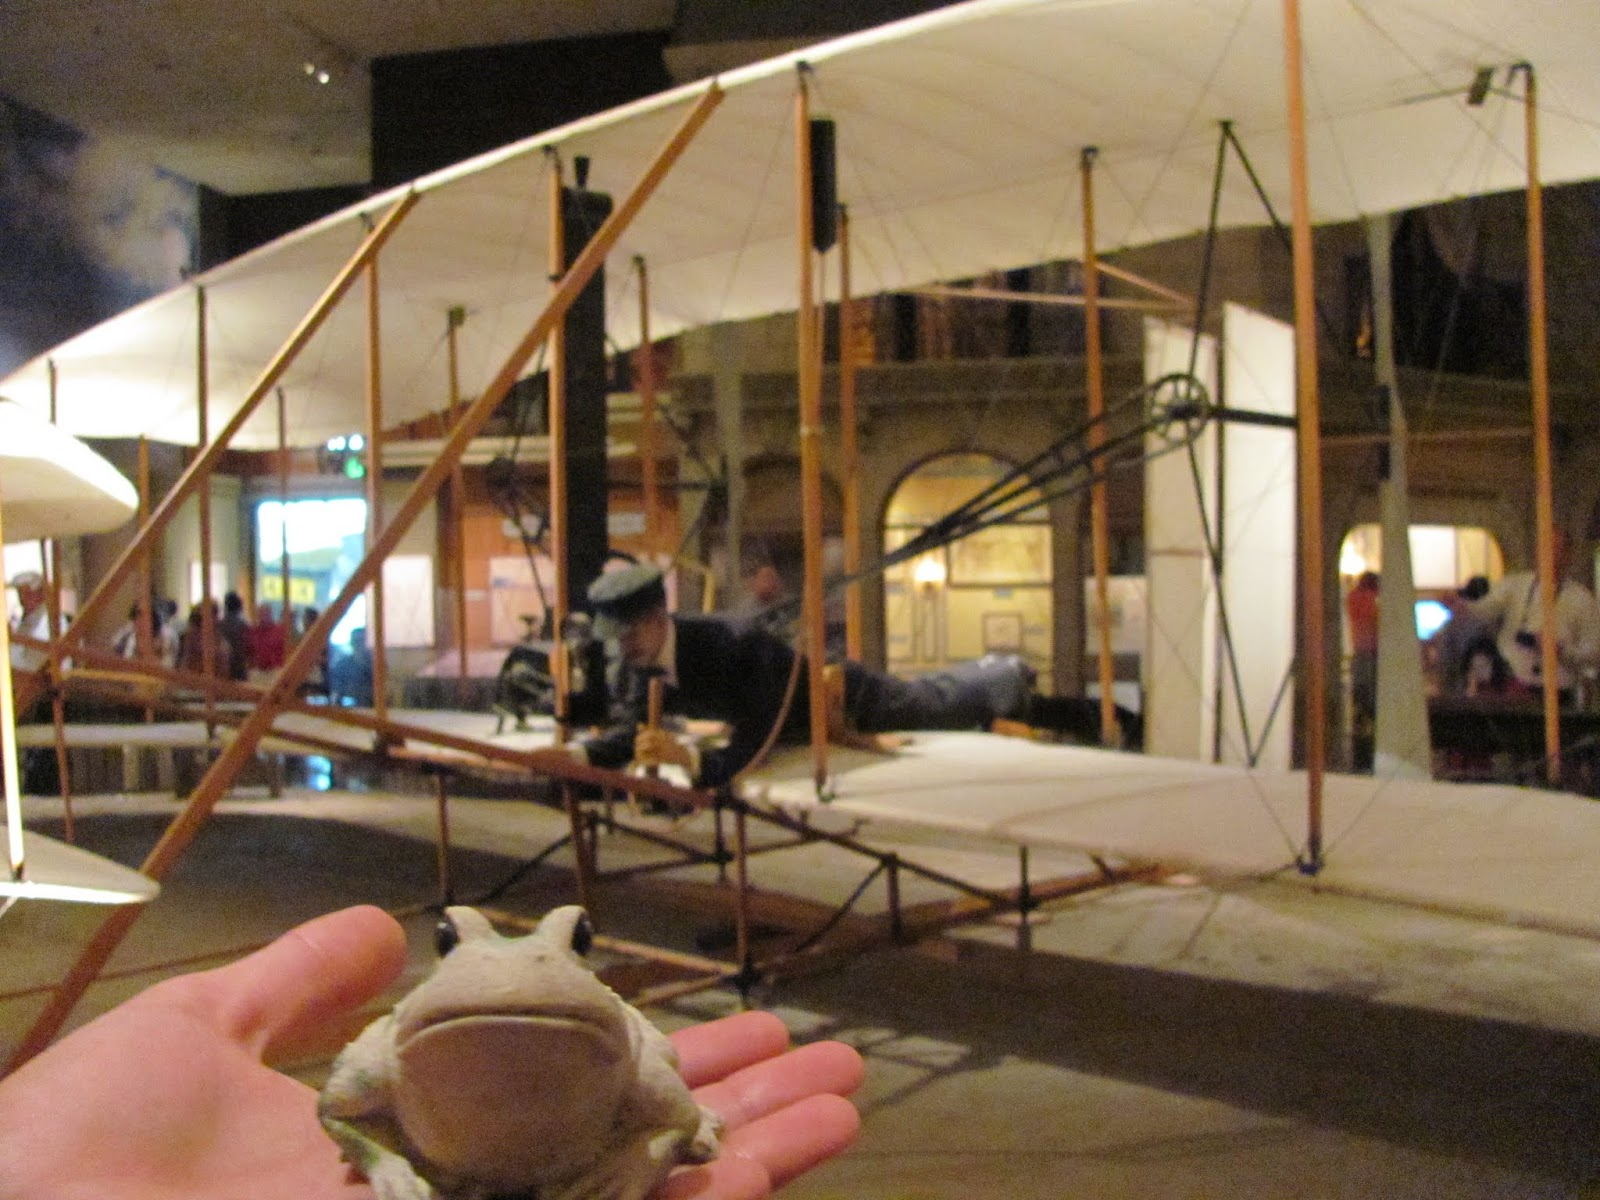 Frog poses with the Wright Brothers Plane at the Smithsonian Air and Space Museum in Washington, DC